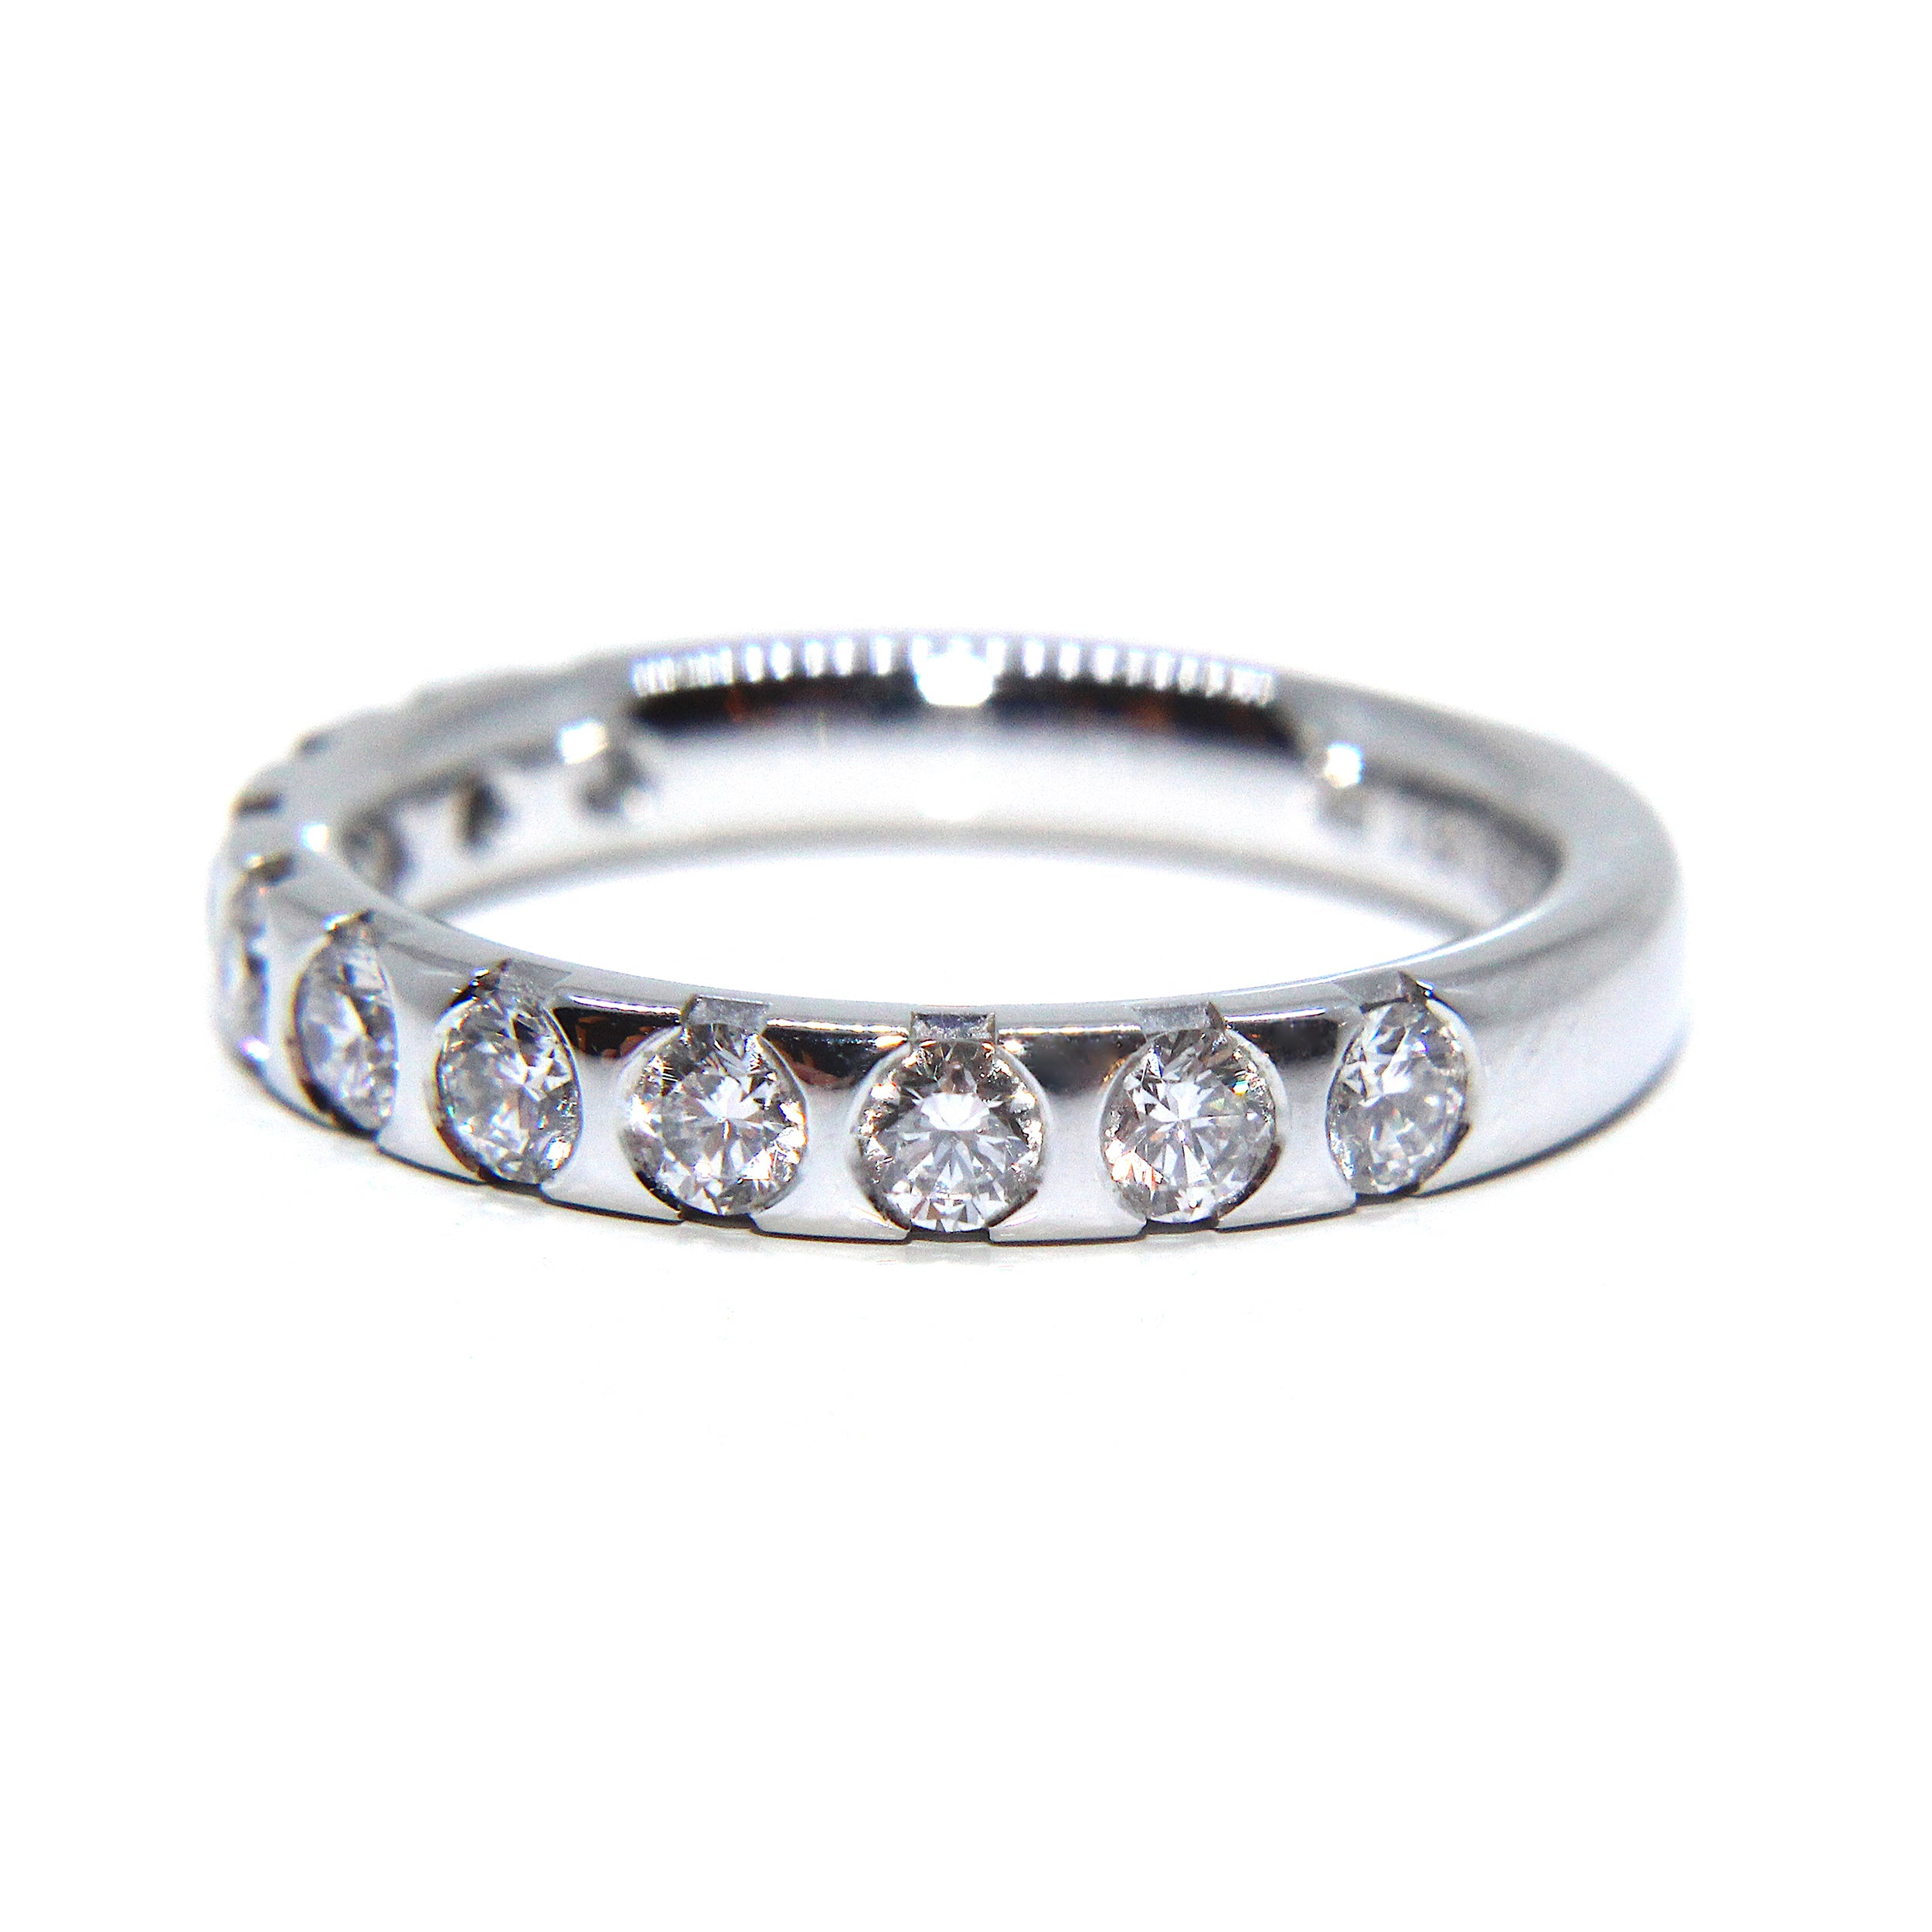 diamonds ring constellation brilliant a pav with twin by cut frame setting double of diamond collections round engagement graff